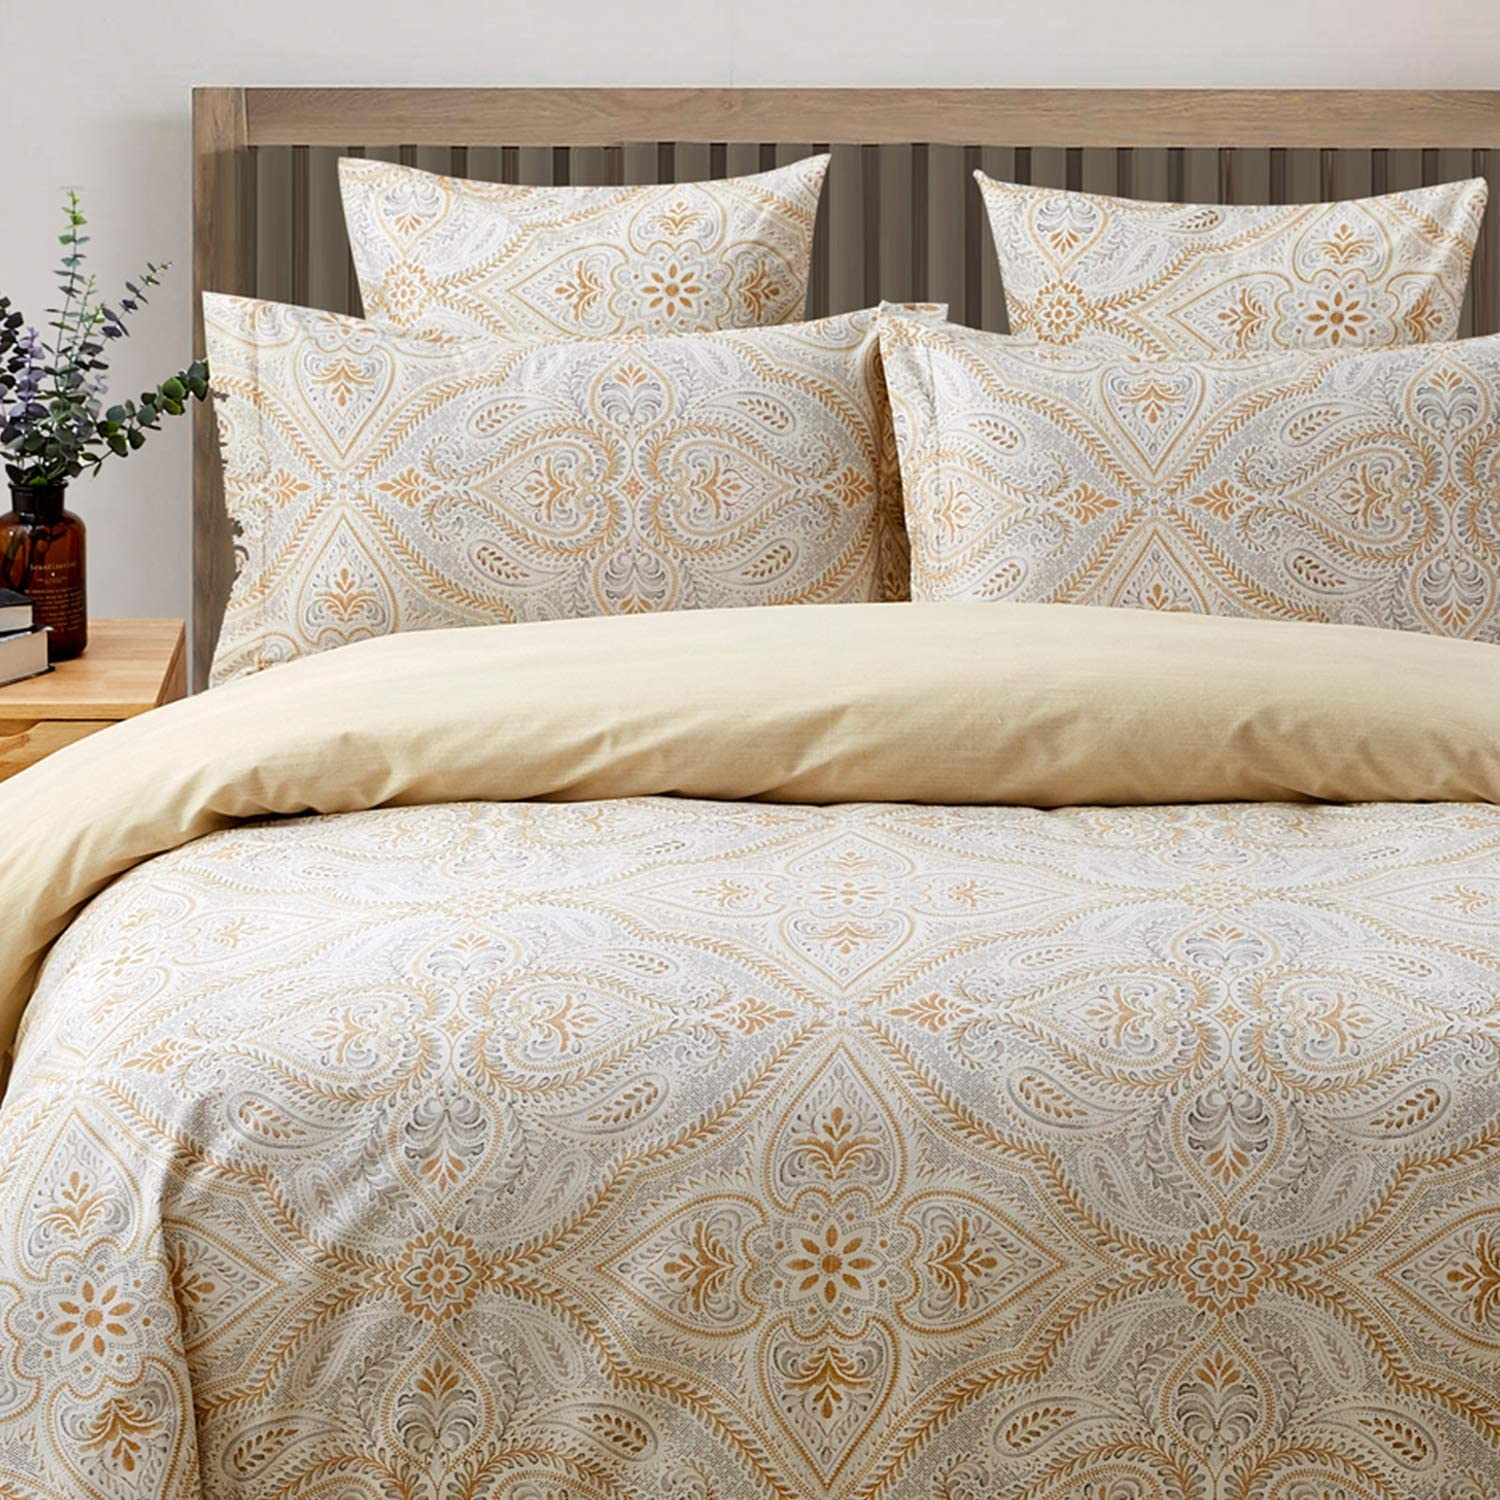 FADFAY Duvet Cover Set Paisley Bedding 100% Cotton Hypoallergenic Gold Classy Luxurious Bedding with Hidden Zipper Closure 3 Pieces, 1Duvet Cover & 2Pillowcases